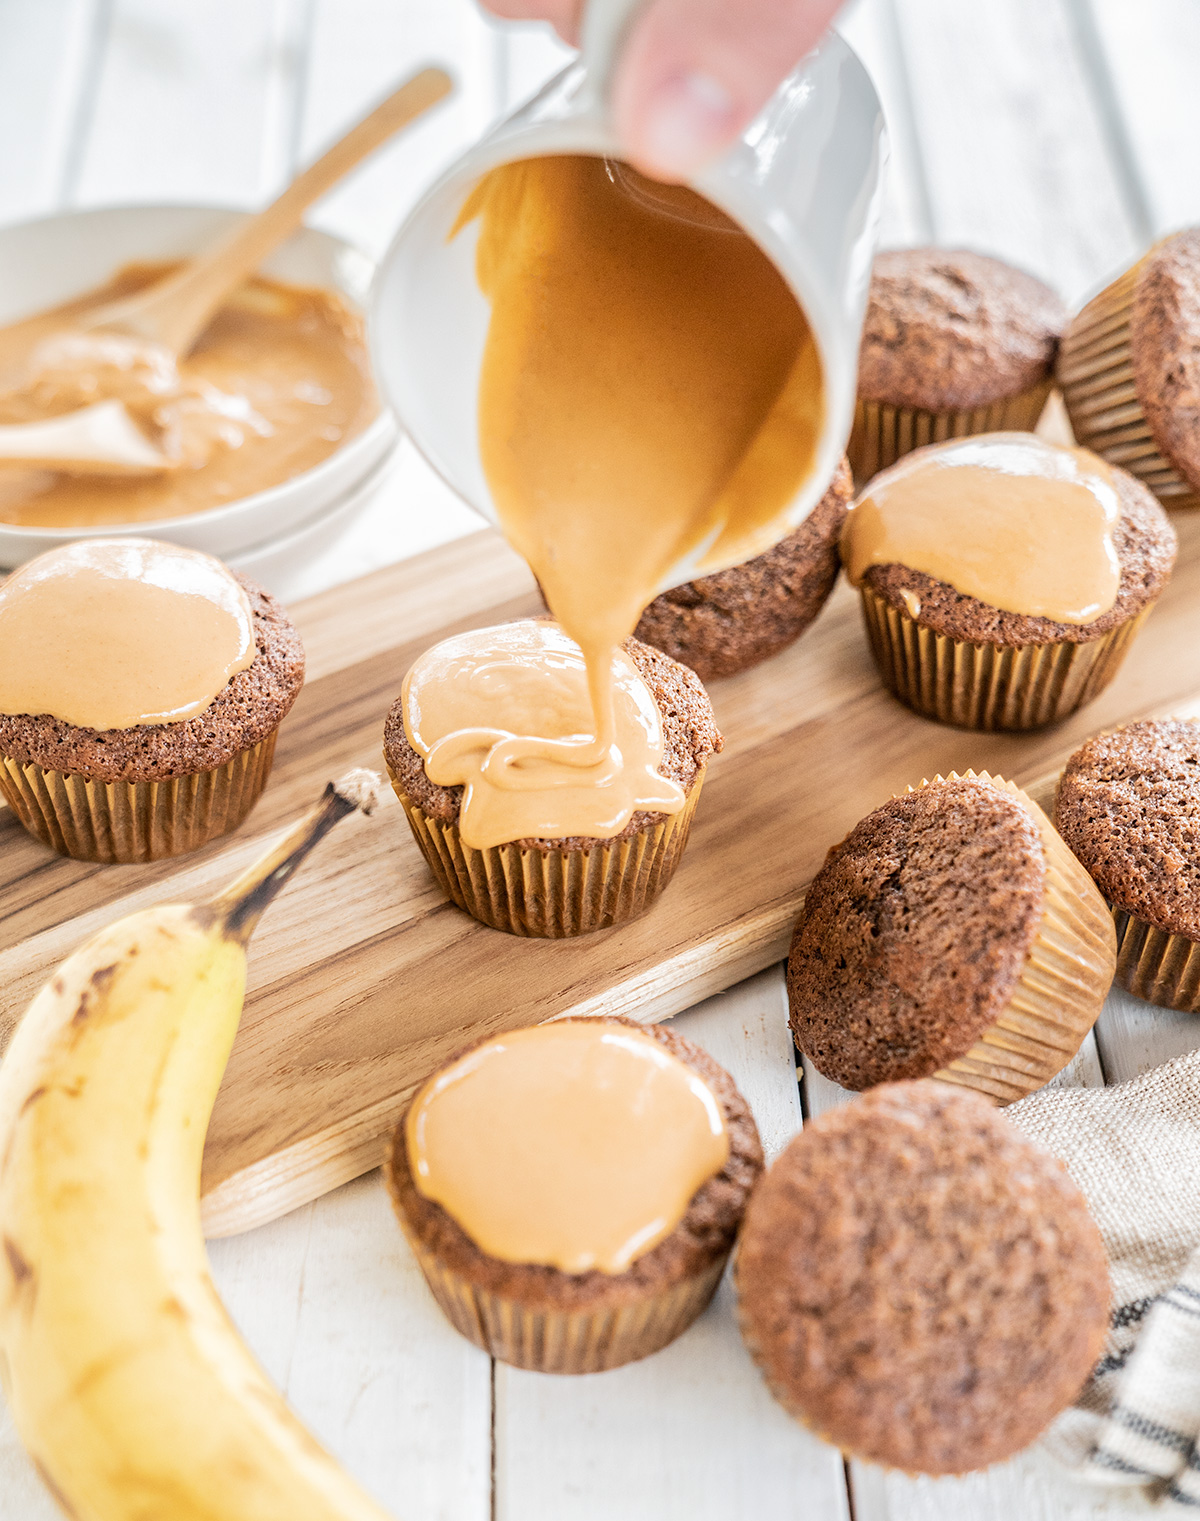 Banana-Chocolate-Muffins-with-Peanut-Butter